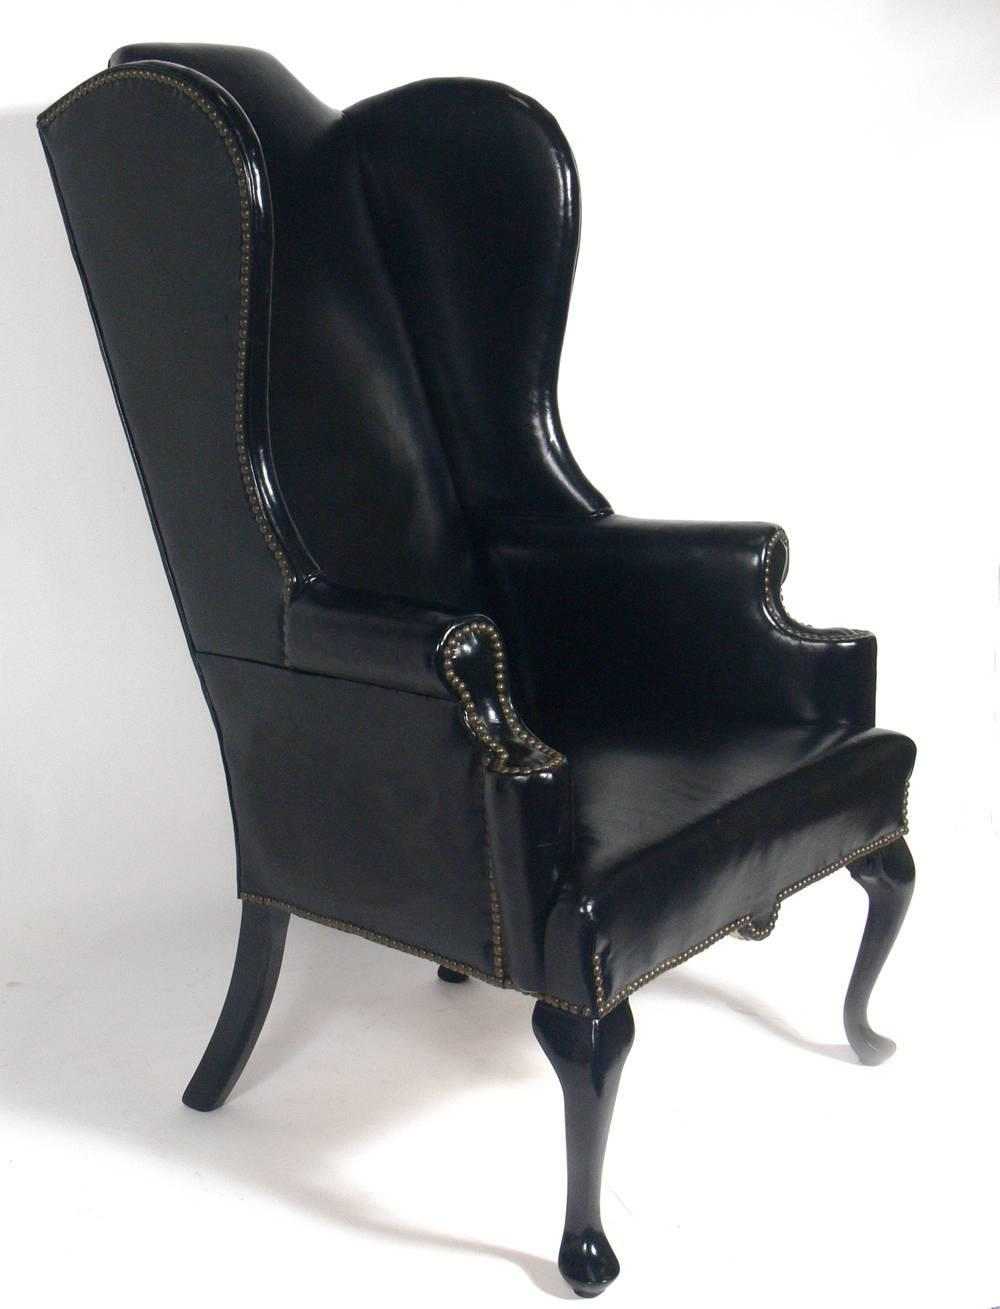 perfectly patinated black leather wing chair for sale at 1stdibs. Black Bedroom Furniture Sets. Home Design Ideas